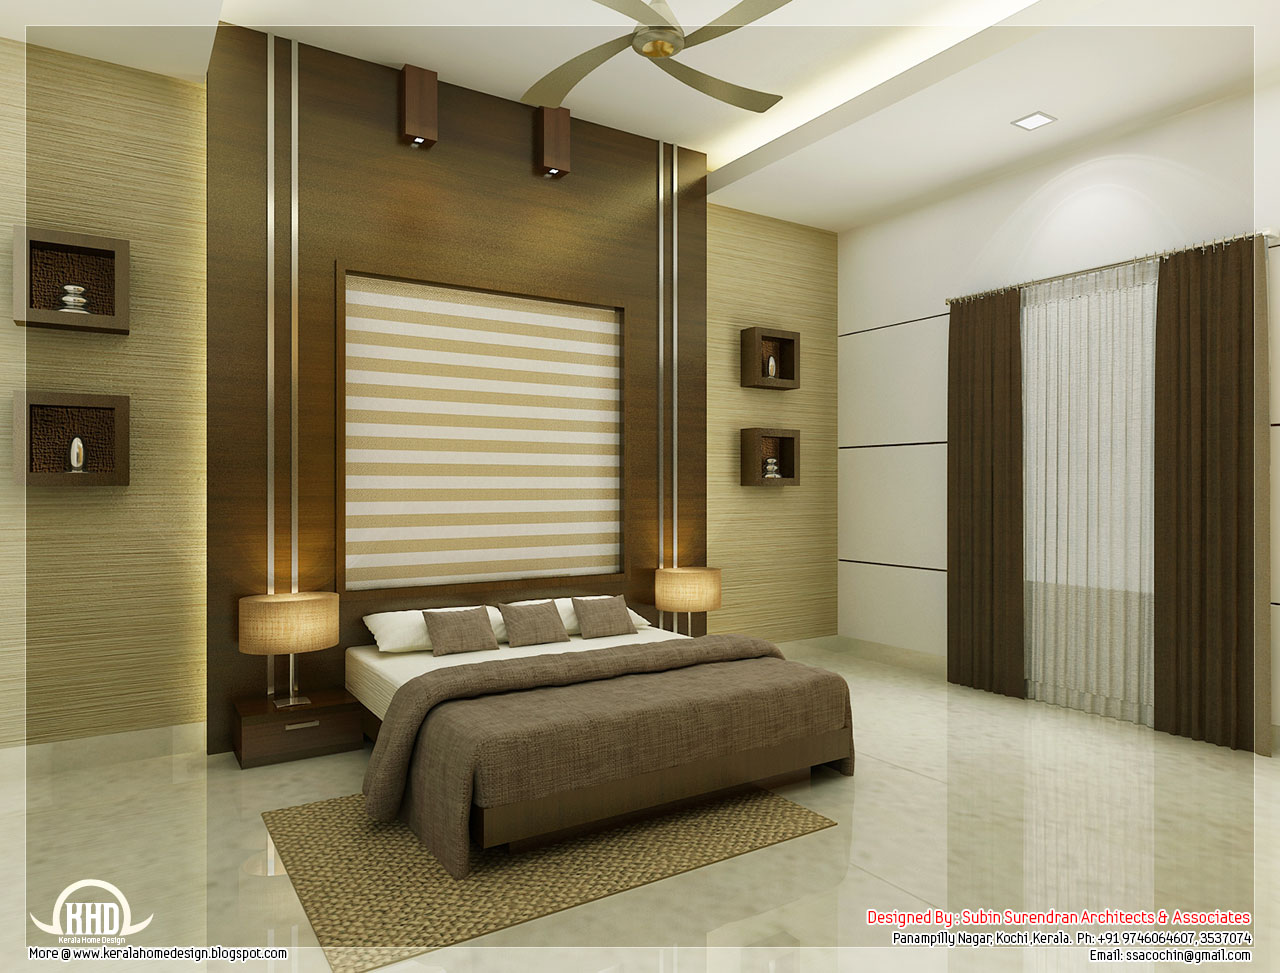 October 2013 architecture house plans for Bedroom designer